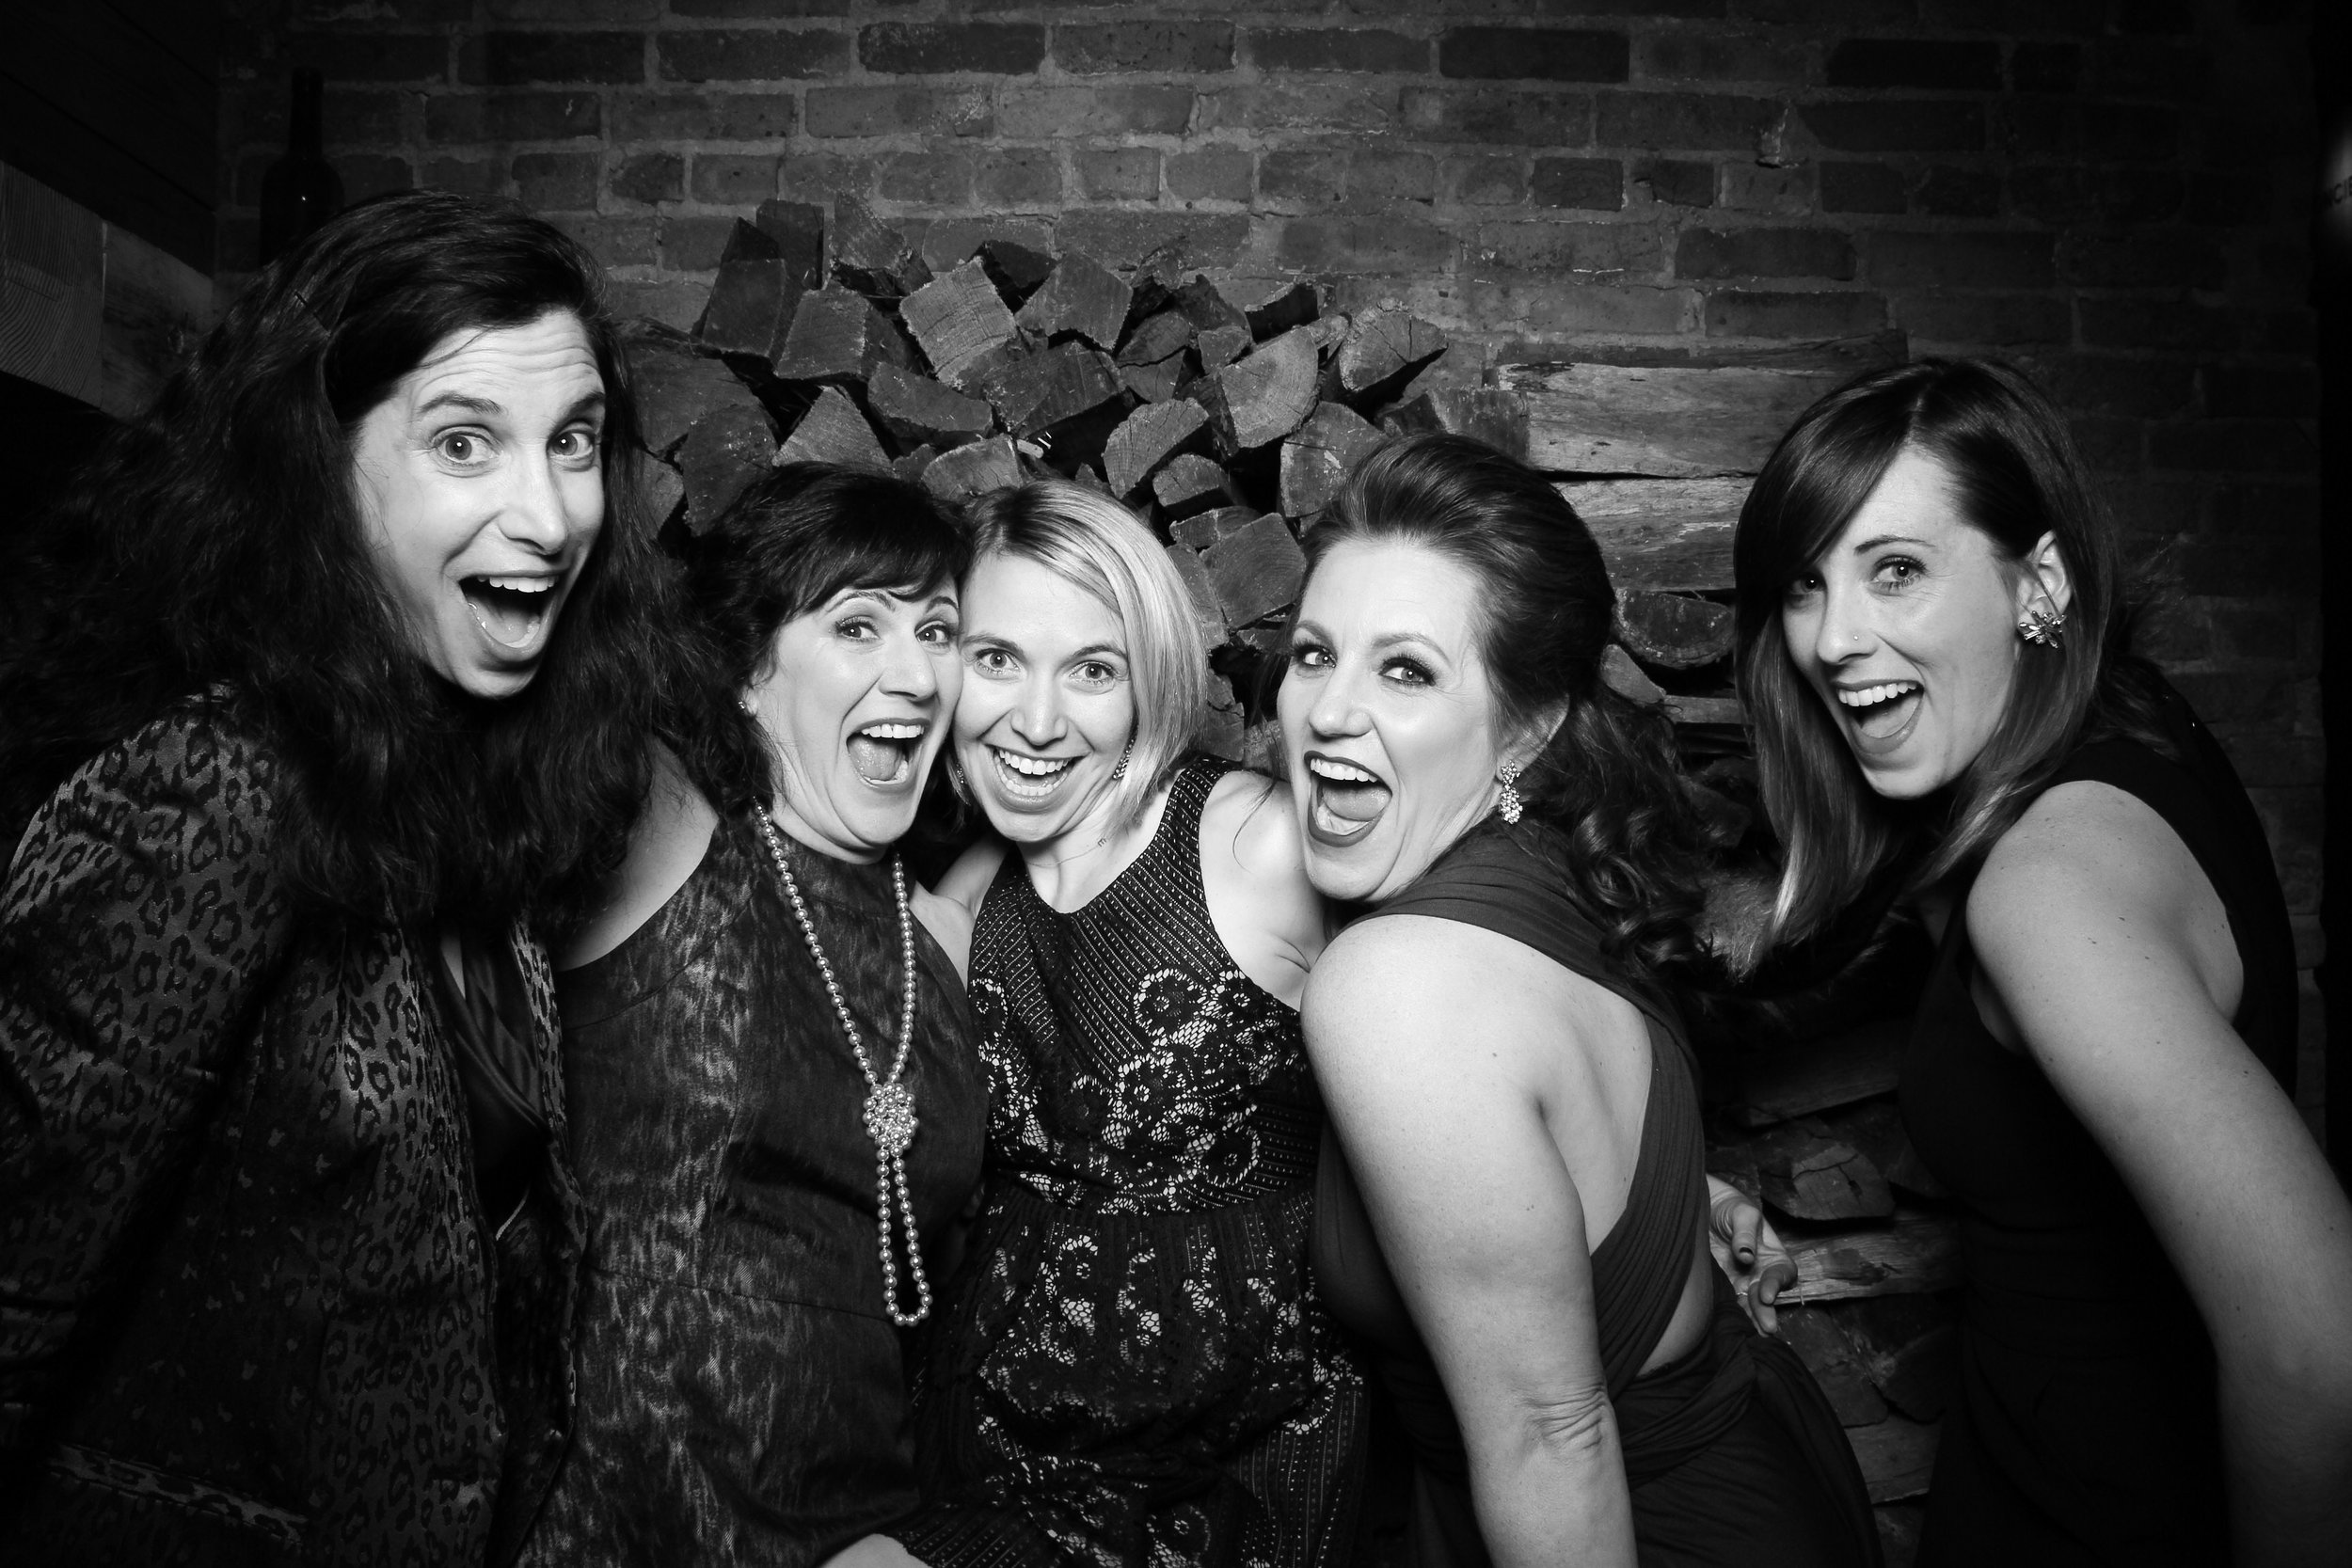 City_Winery_Chicago_Holiday_Party_Event_Wedding_Reception_Photo_Booth_07.jpg